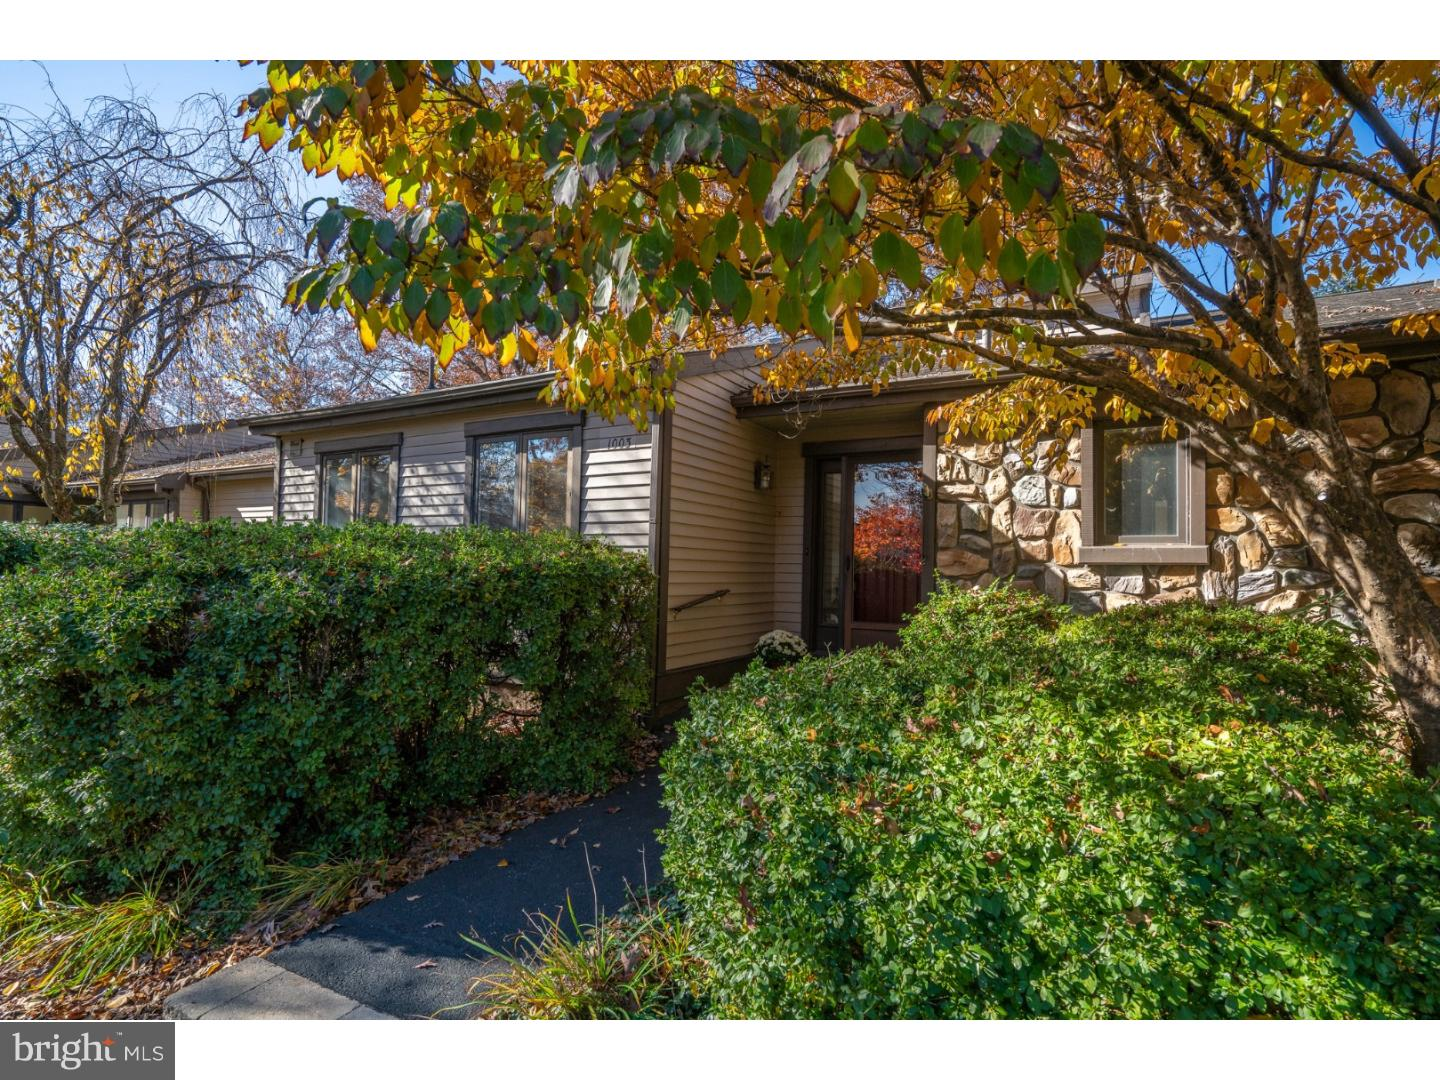 1003 Kennett Way West Chester , PA 19380